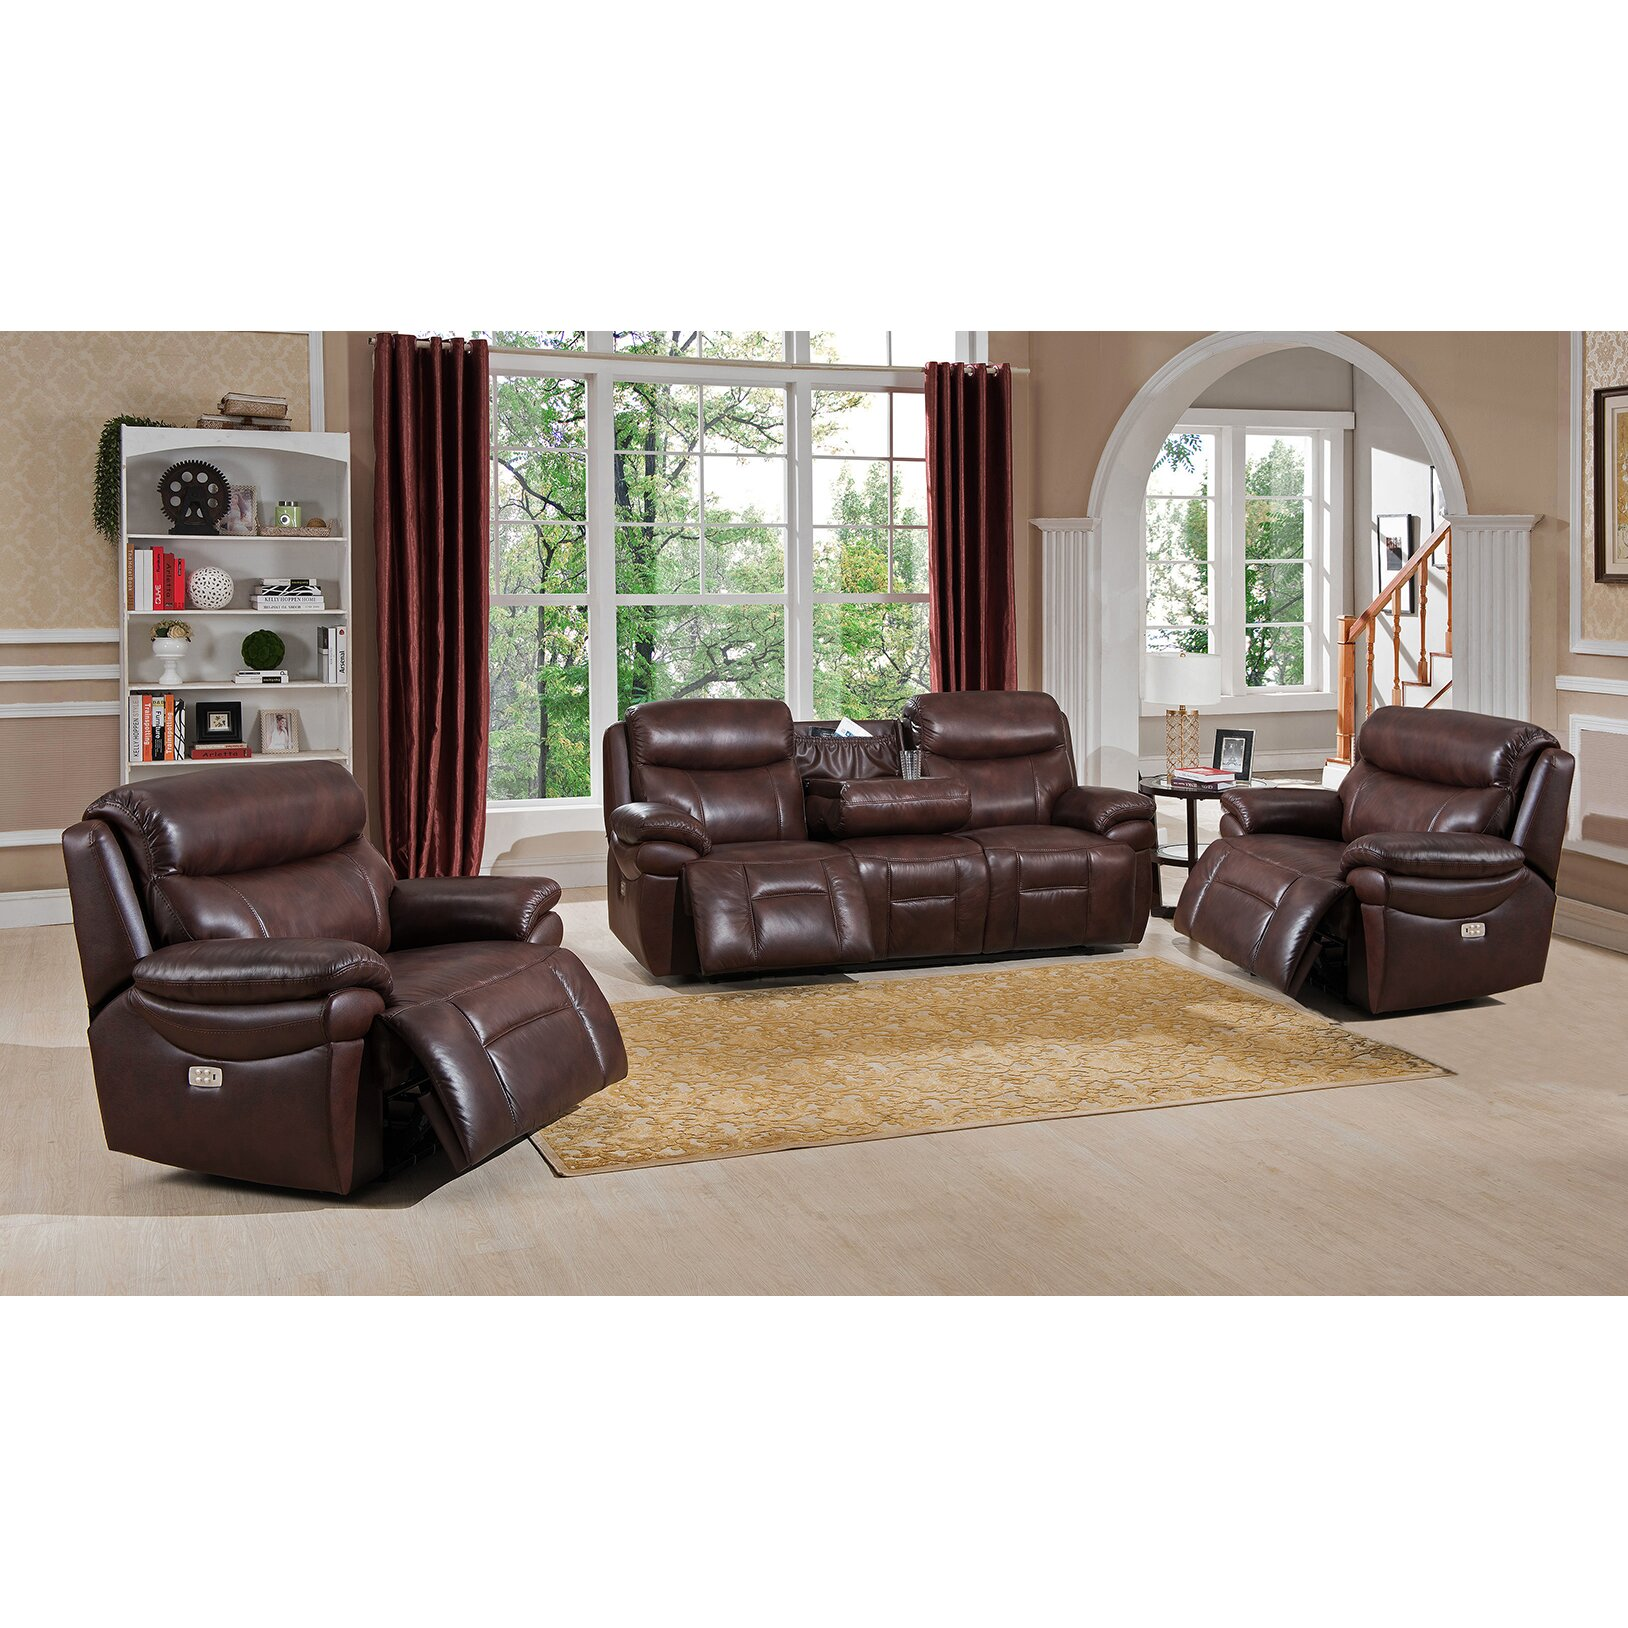 Three Piece Living Room Set Amax Sanford 3 Piece Leather Power Reclining Living Room Set With